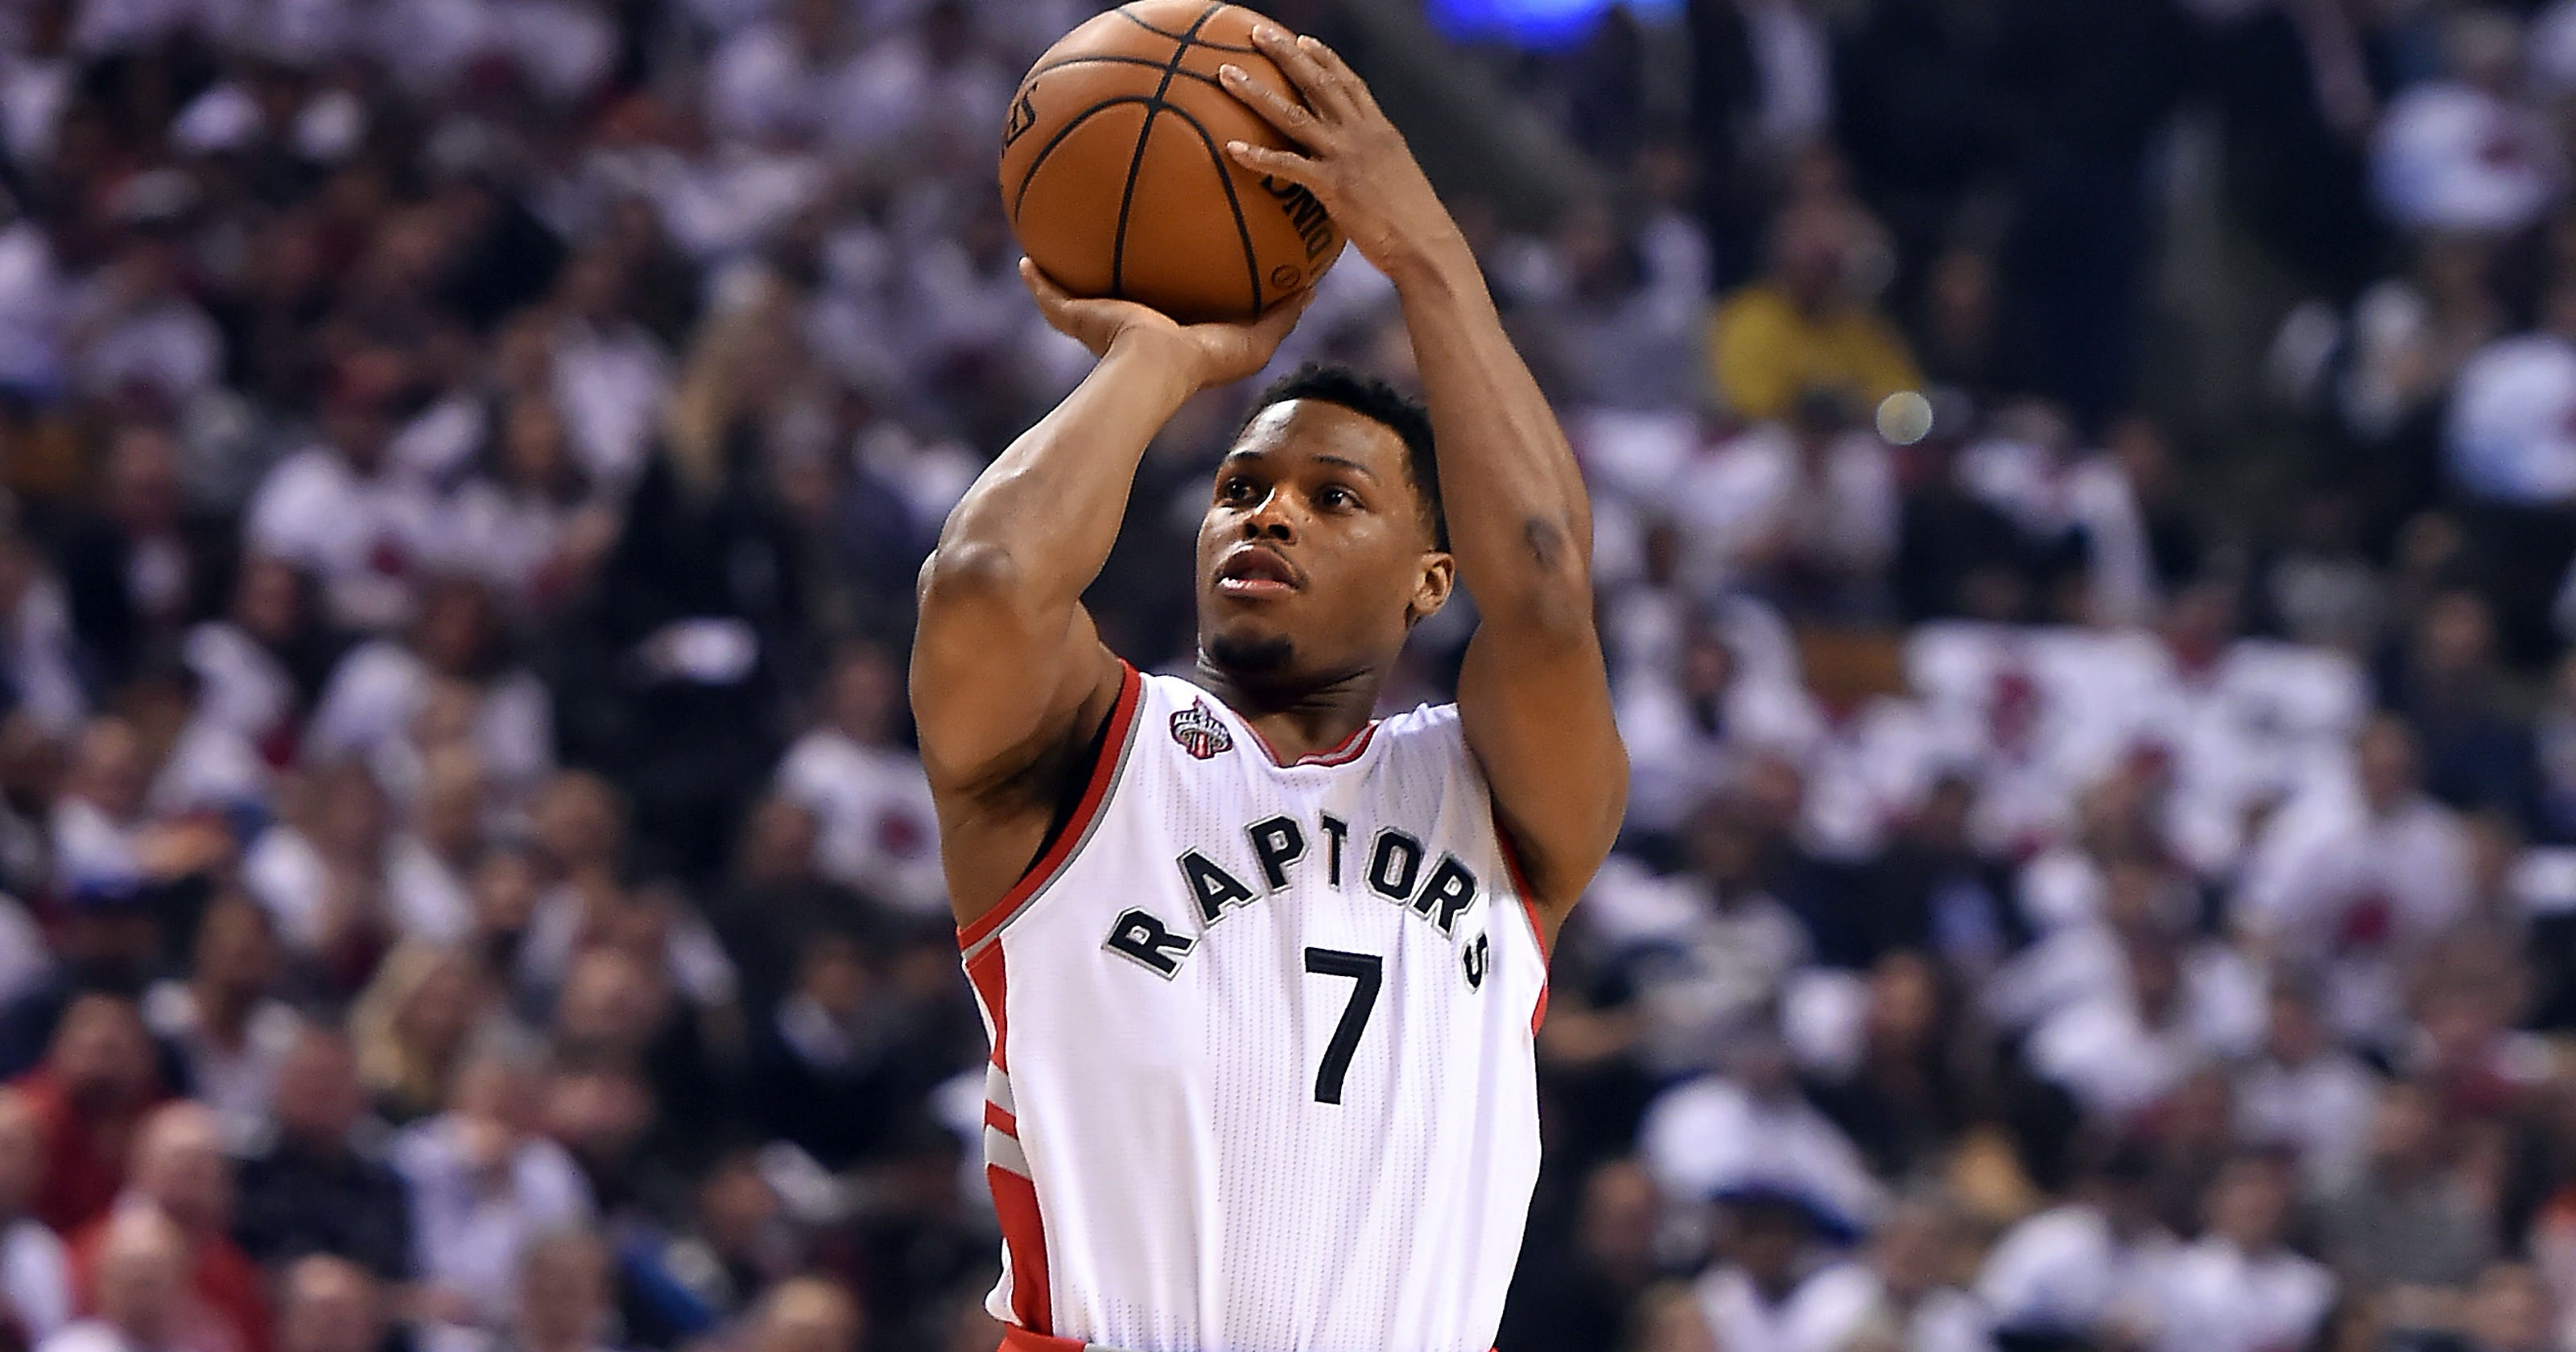 680c1ab8e593 Raptors guard Kyle Lowry   It sucks I m playing this bad